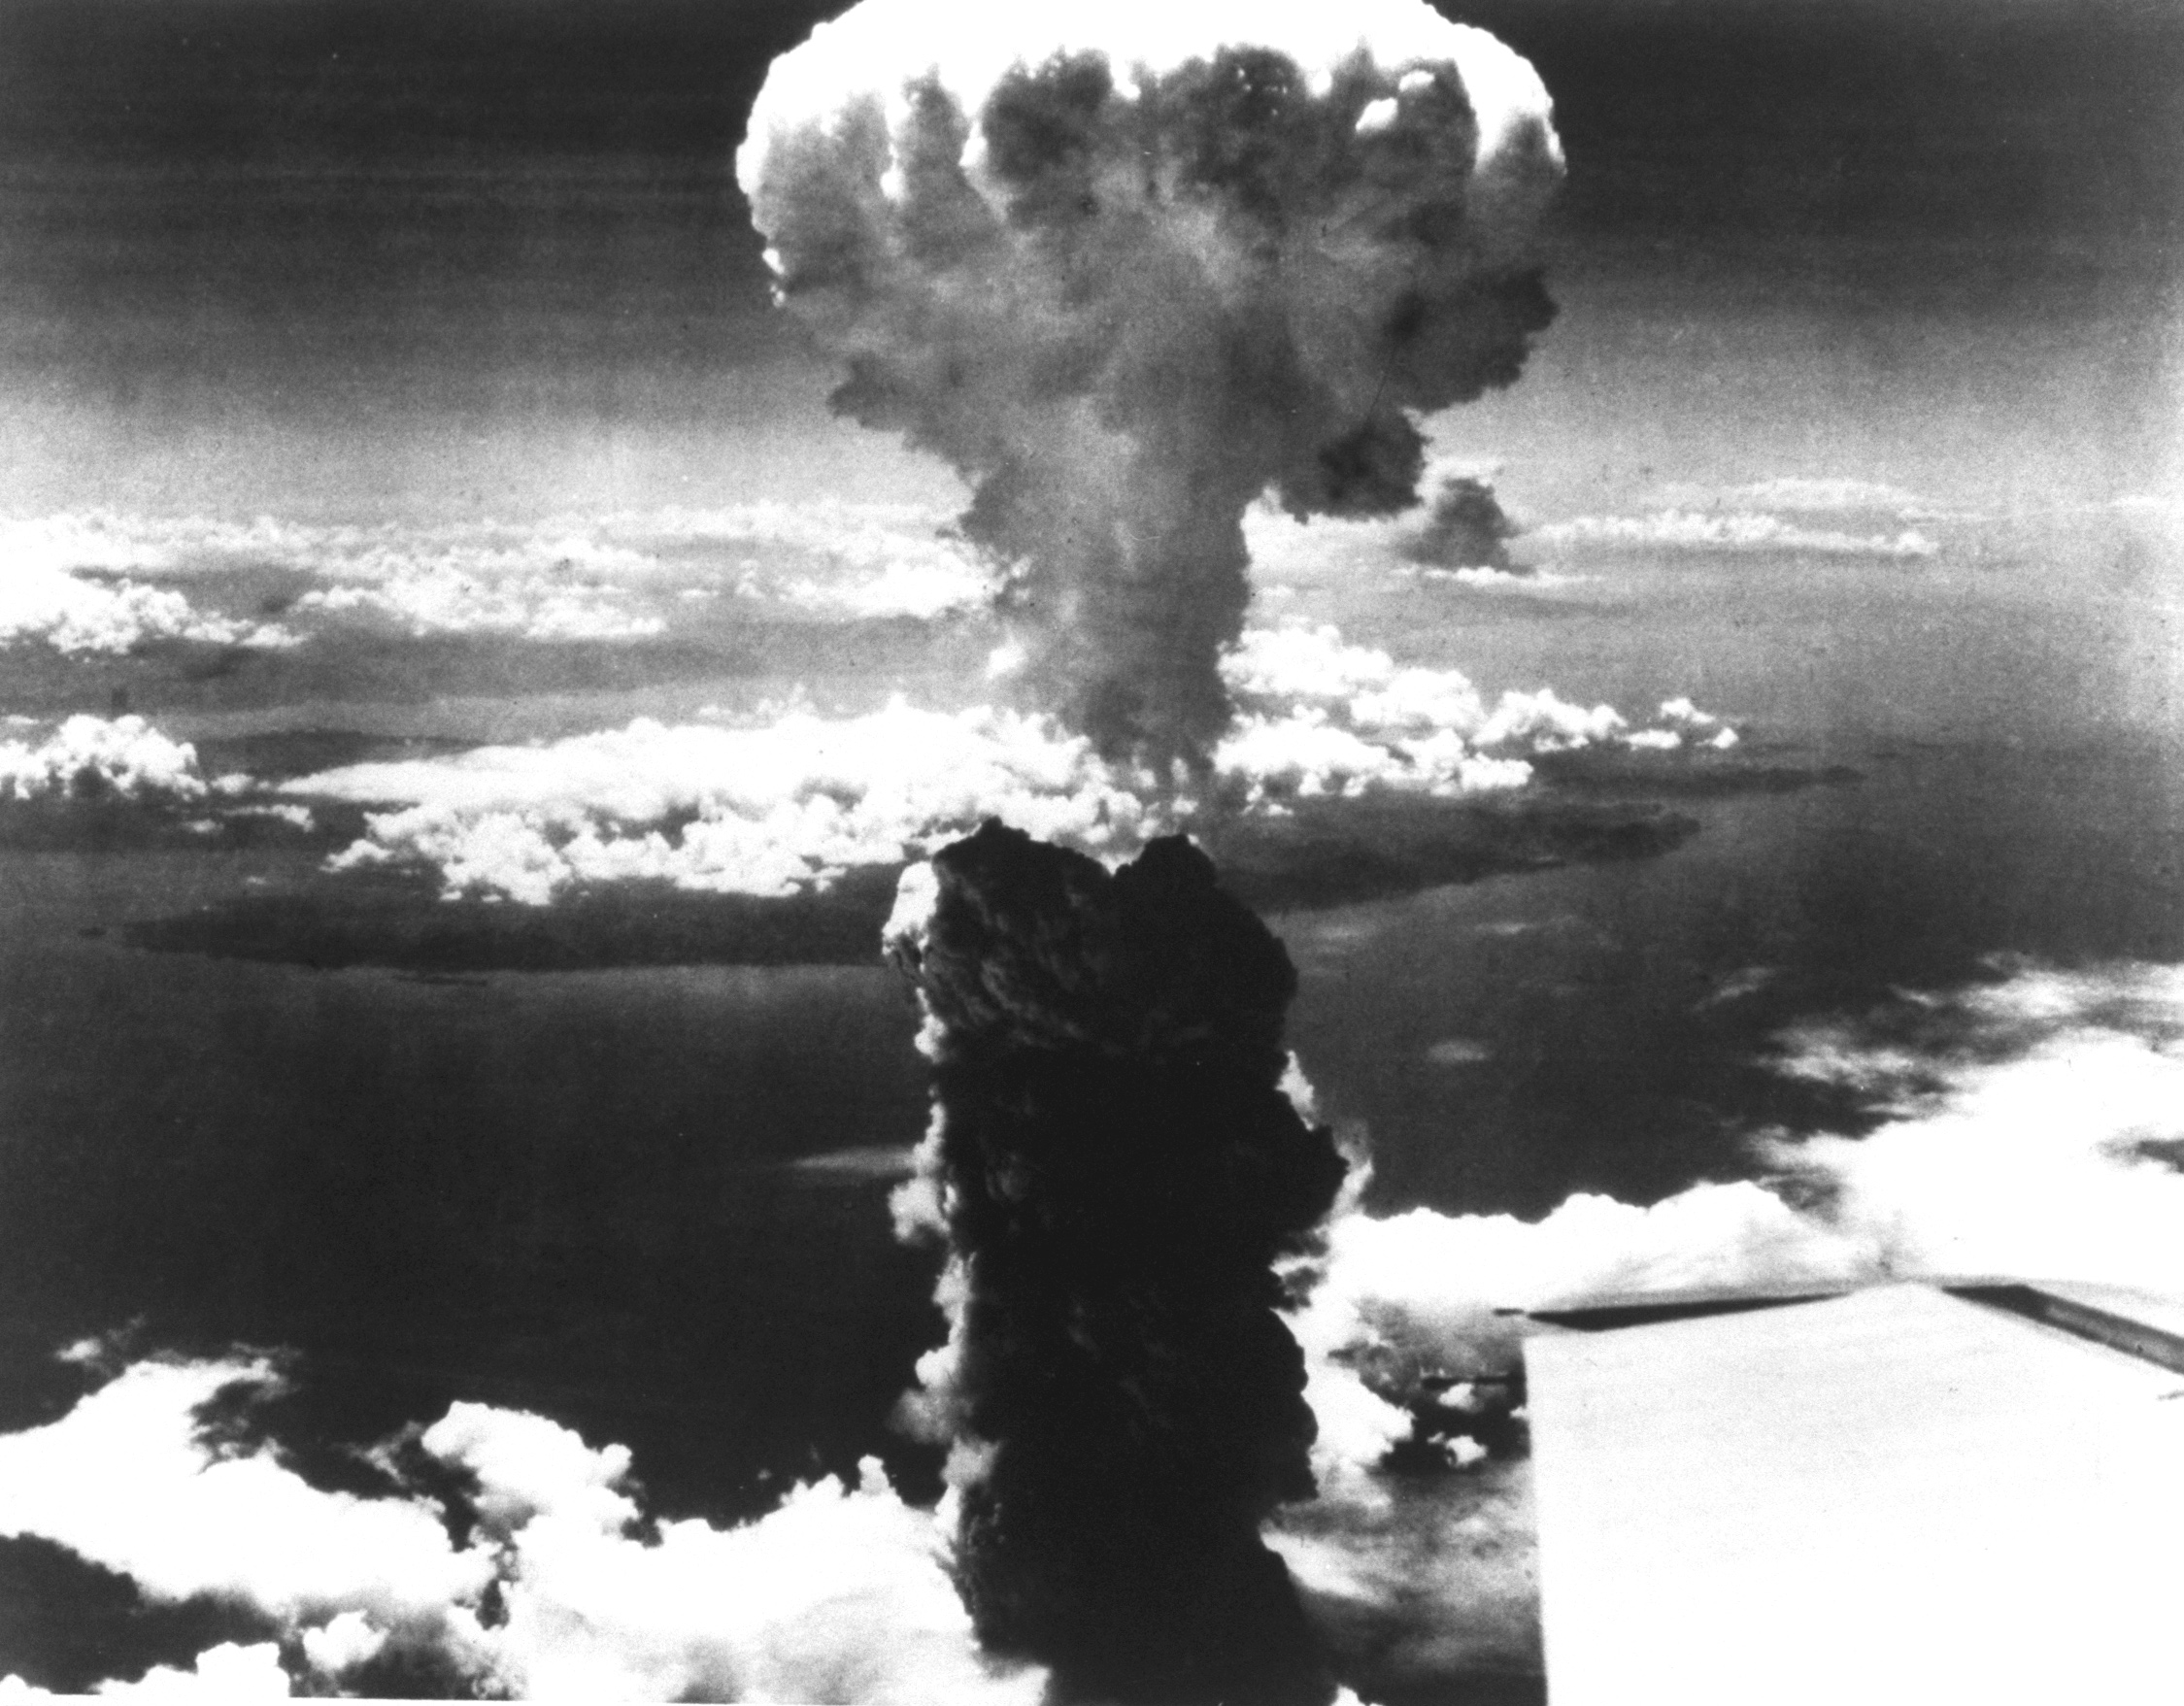 A mushroom cloud forms over Nagasaki, Japan after the dropping of the second atomic bomb.